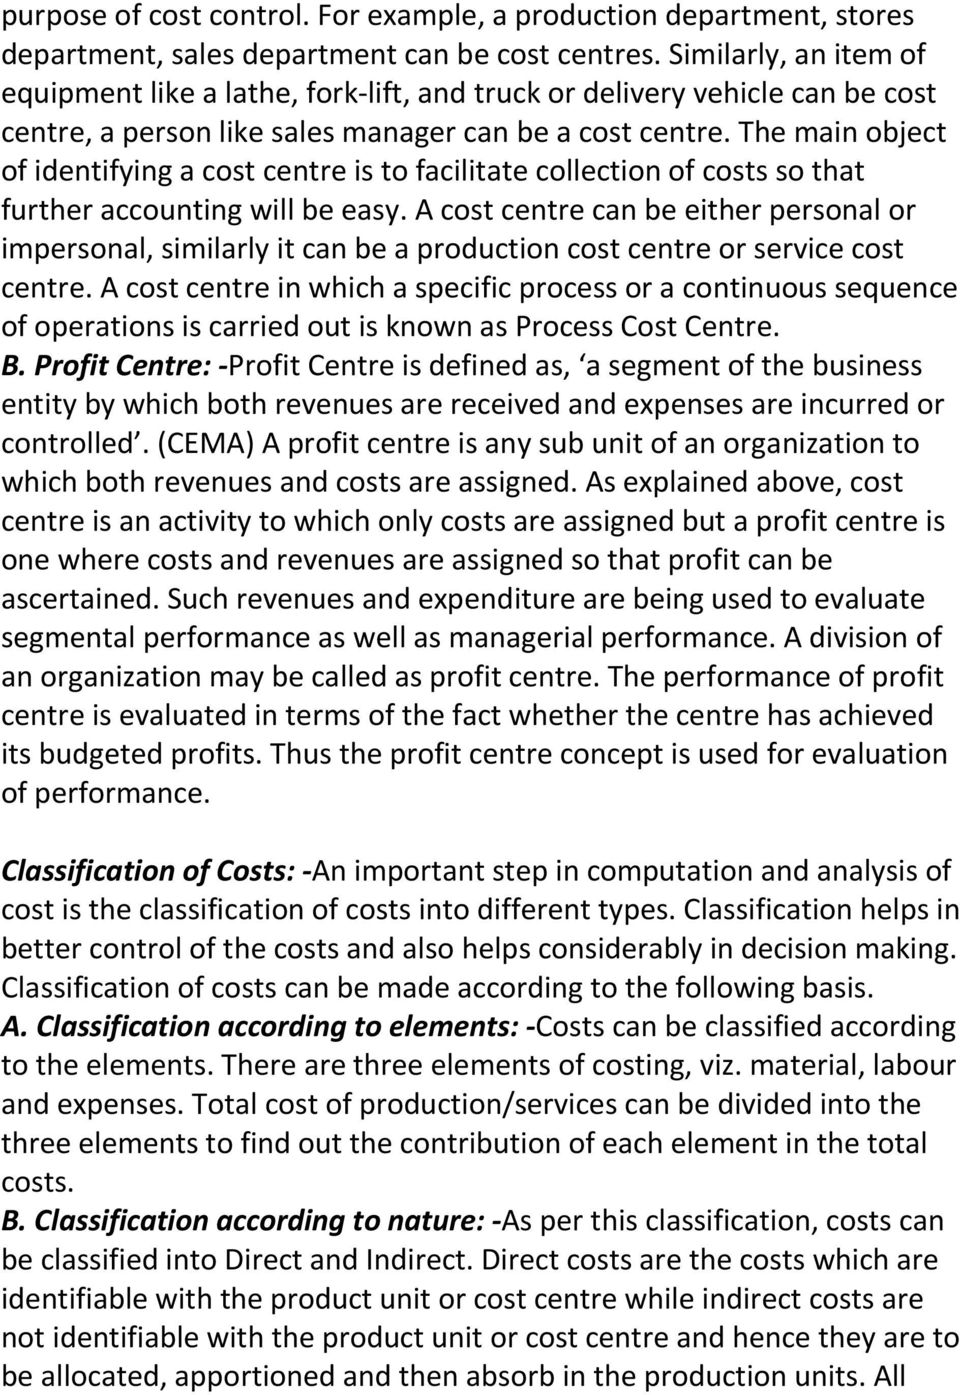 The main object of identifying a cost centre is to facilitate collection of costs so that further accounting will be easy.